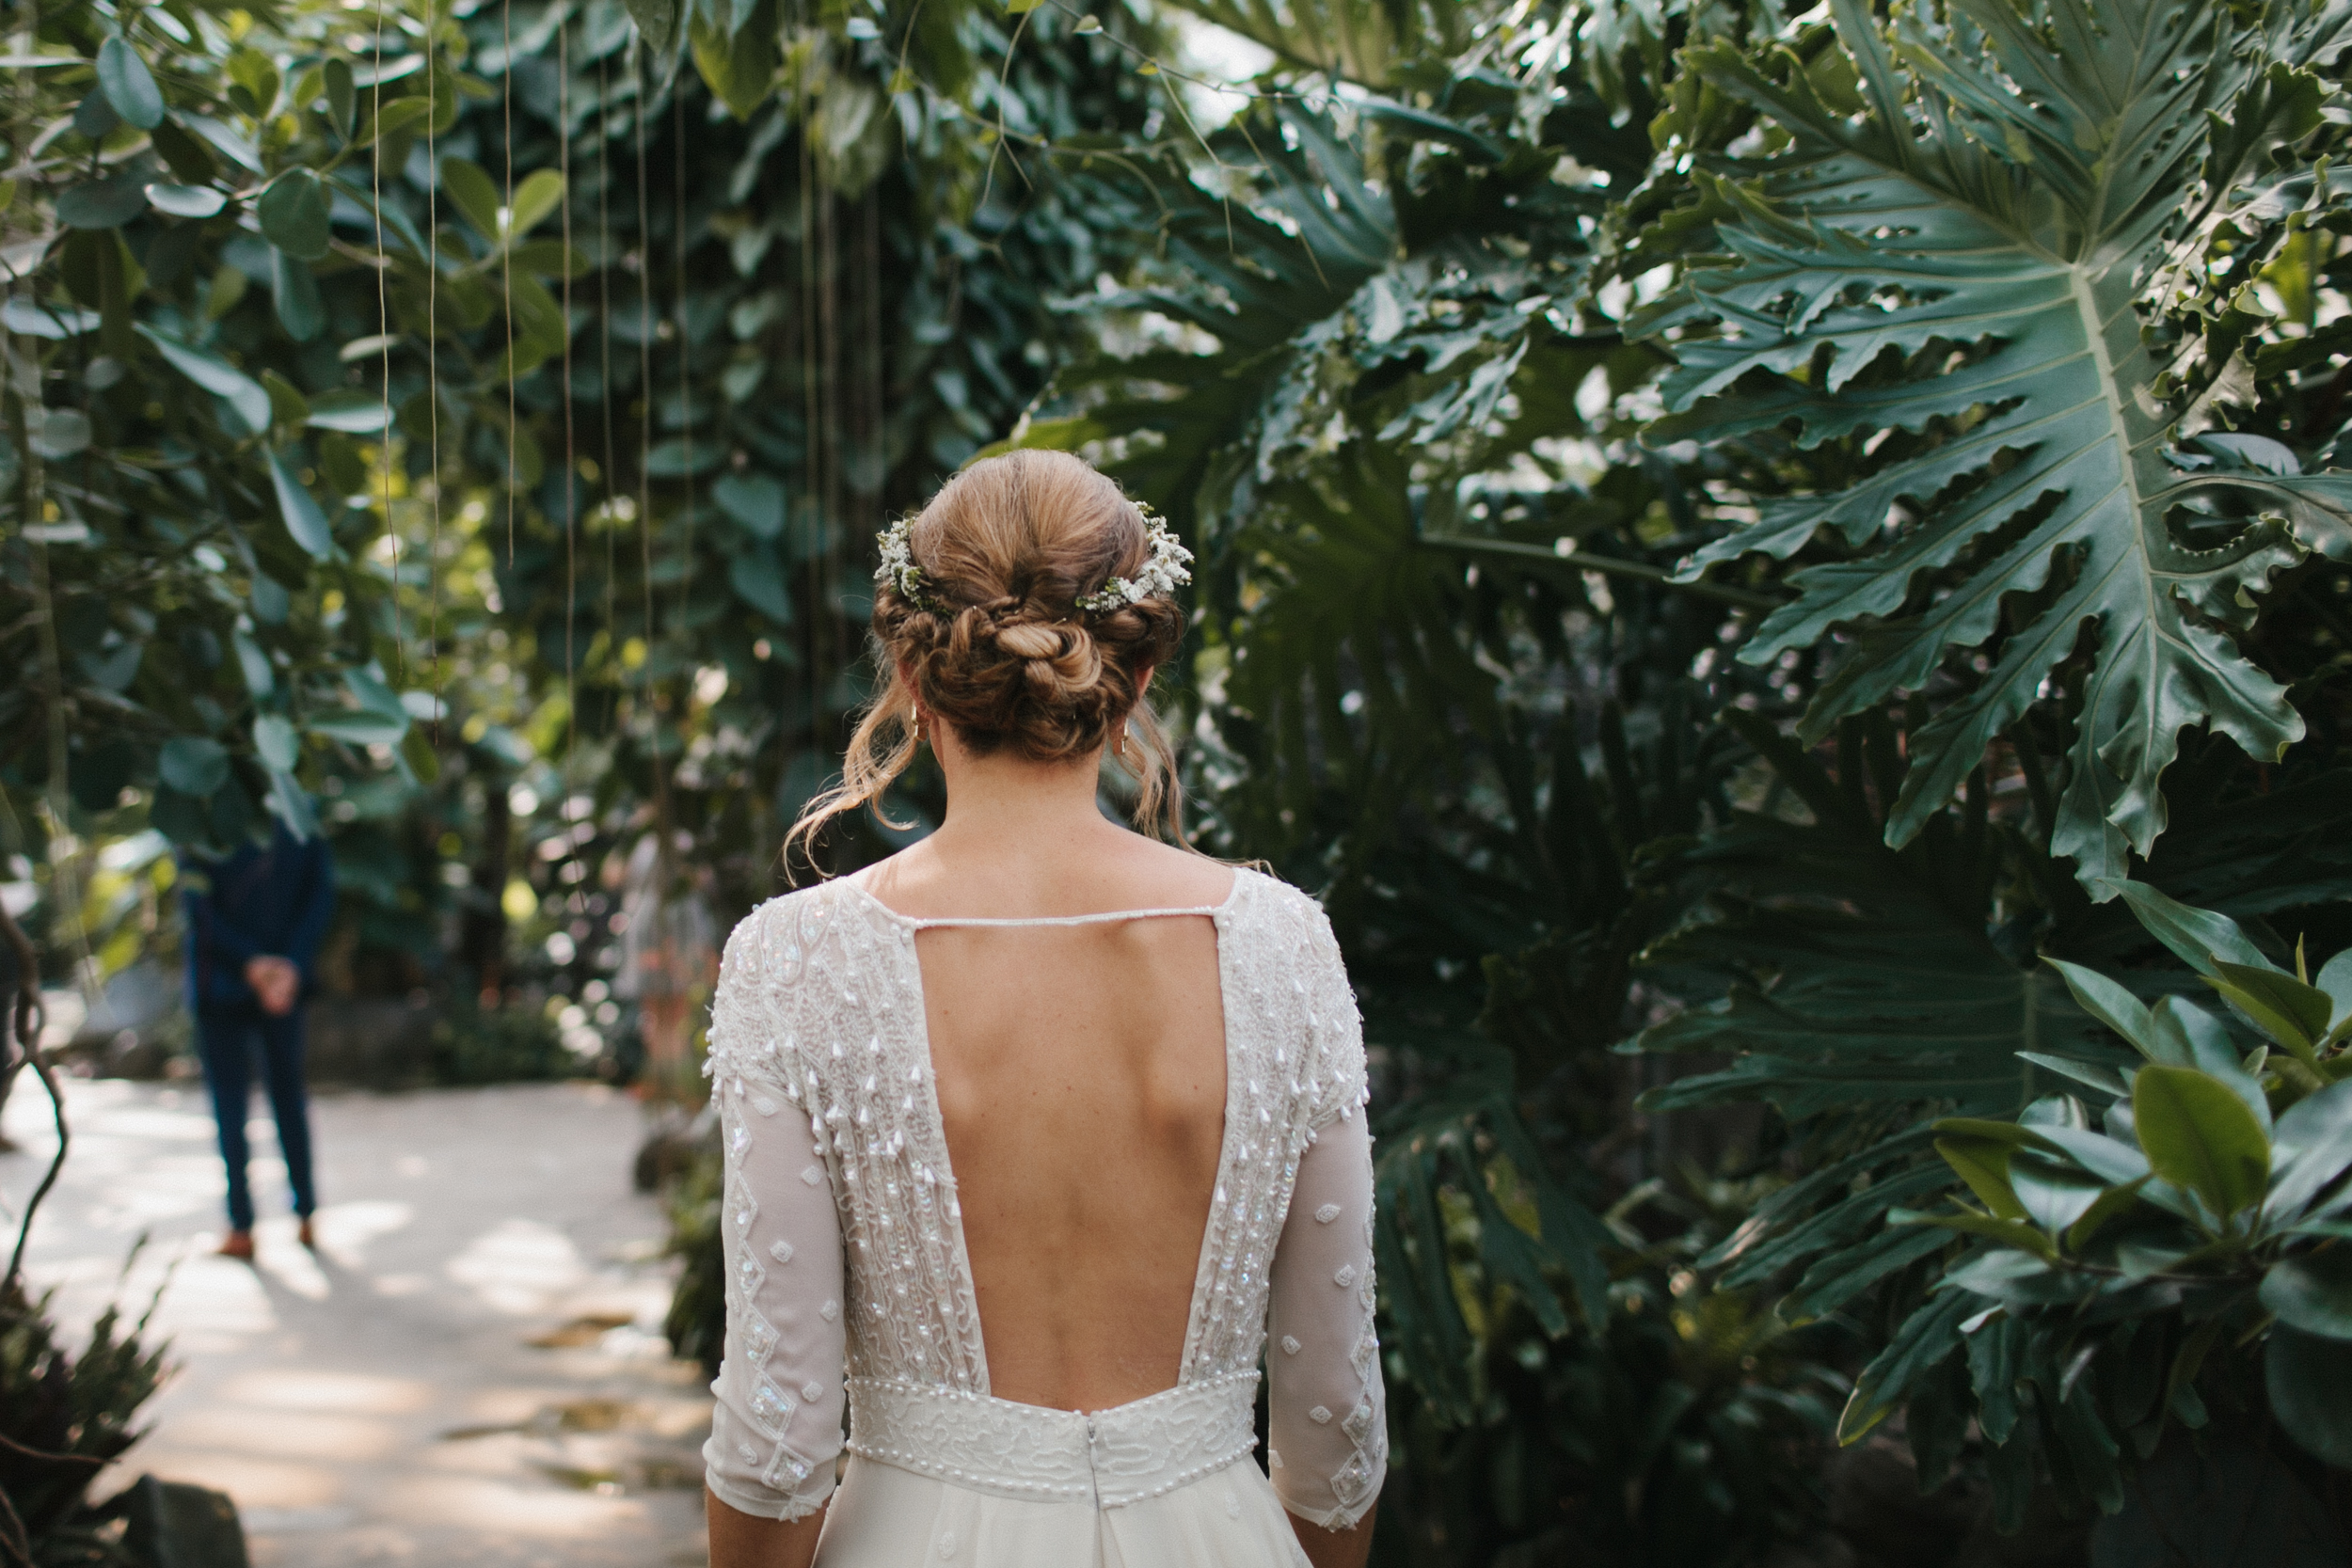 Chicago Wedding Garfield Park Conservatory Mae Stier Wedding Photographer Lifestyle Photography Midwest California-012.jpg